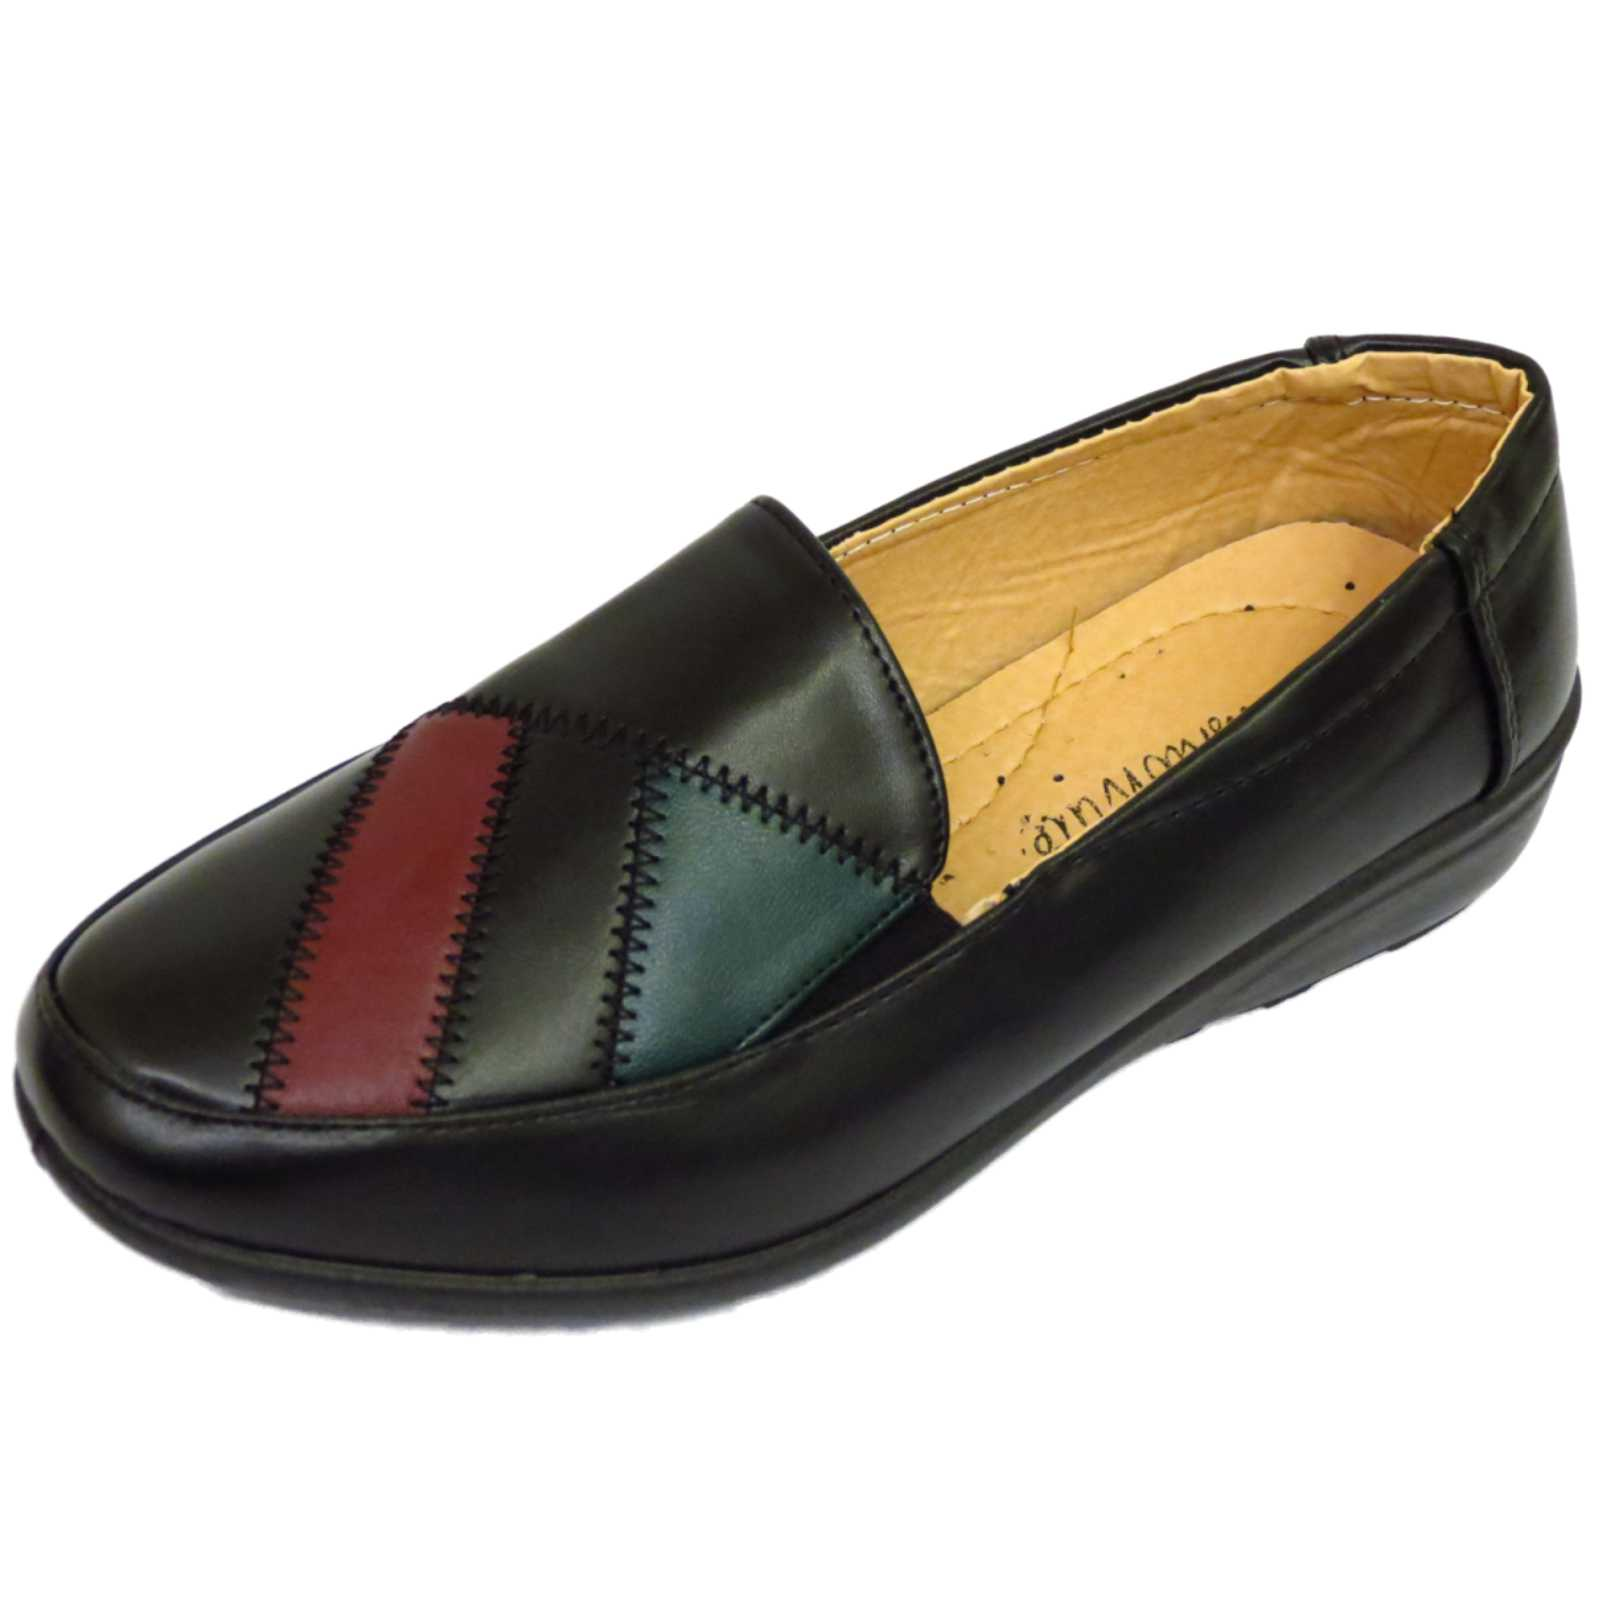 LADIES-SMART-WORK-COMFORT-ABLE-SLIP-ON-LOAFERS-SECRETARY-WOMENS-SHOES-SIZES-3-8